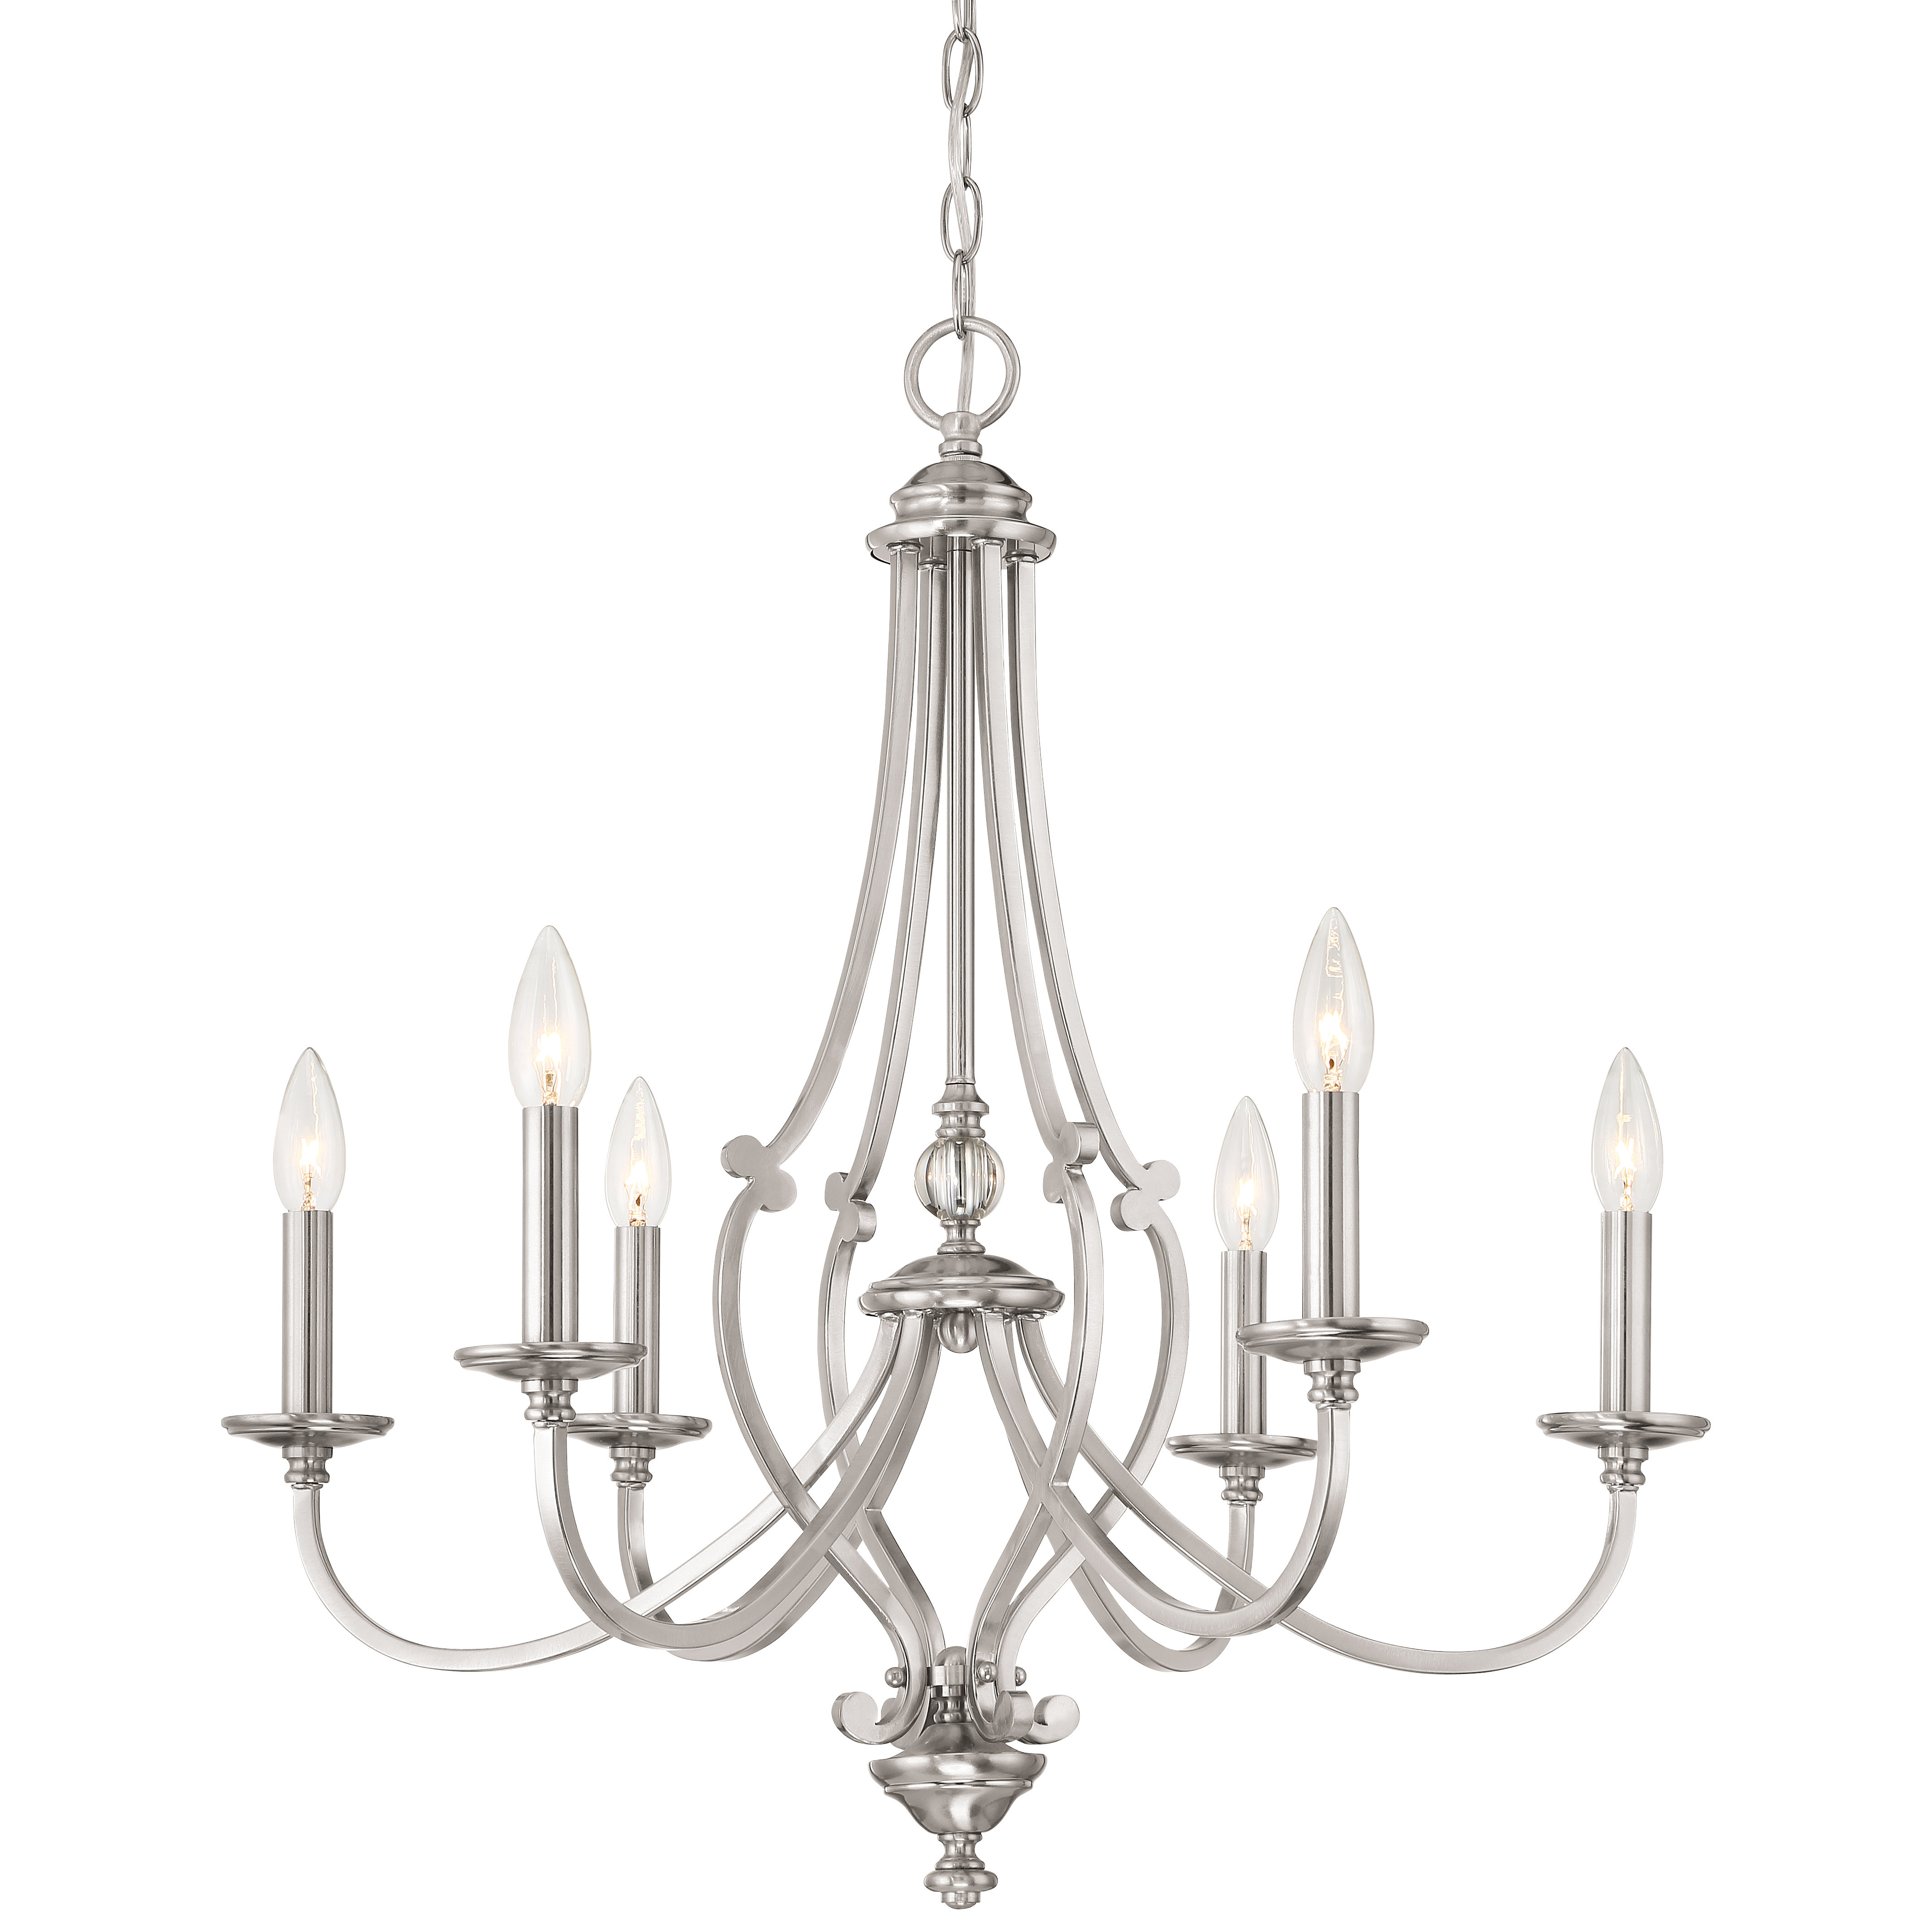 Well Liked Audane 6 Light Chandelier With Berger 5 Light Candle Style Chandeliers (View 17 of 20)